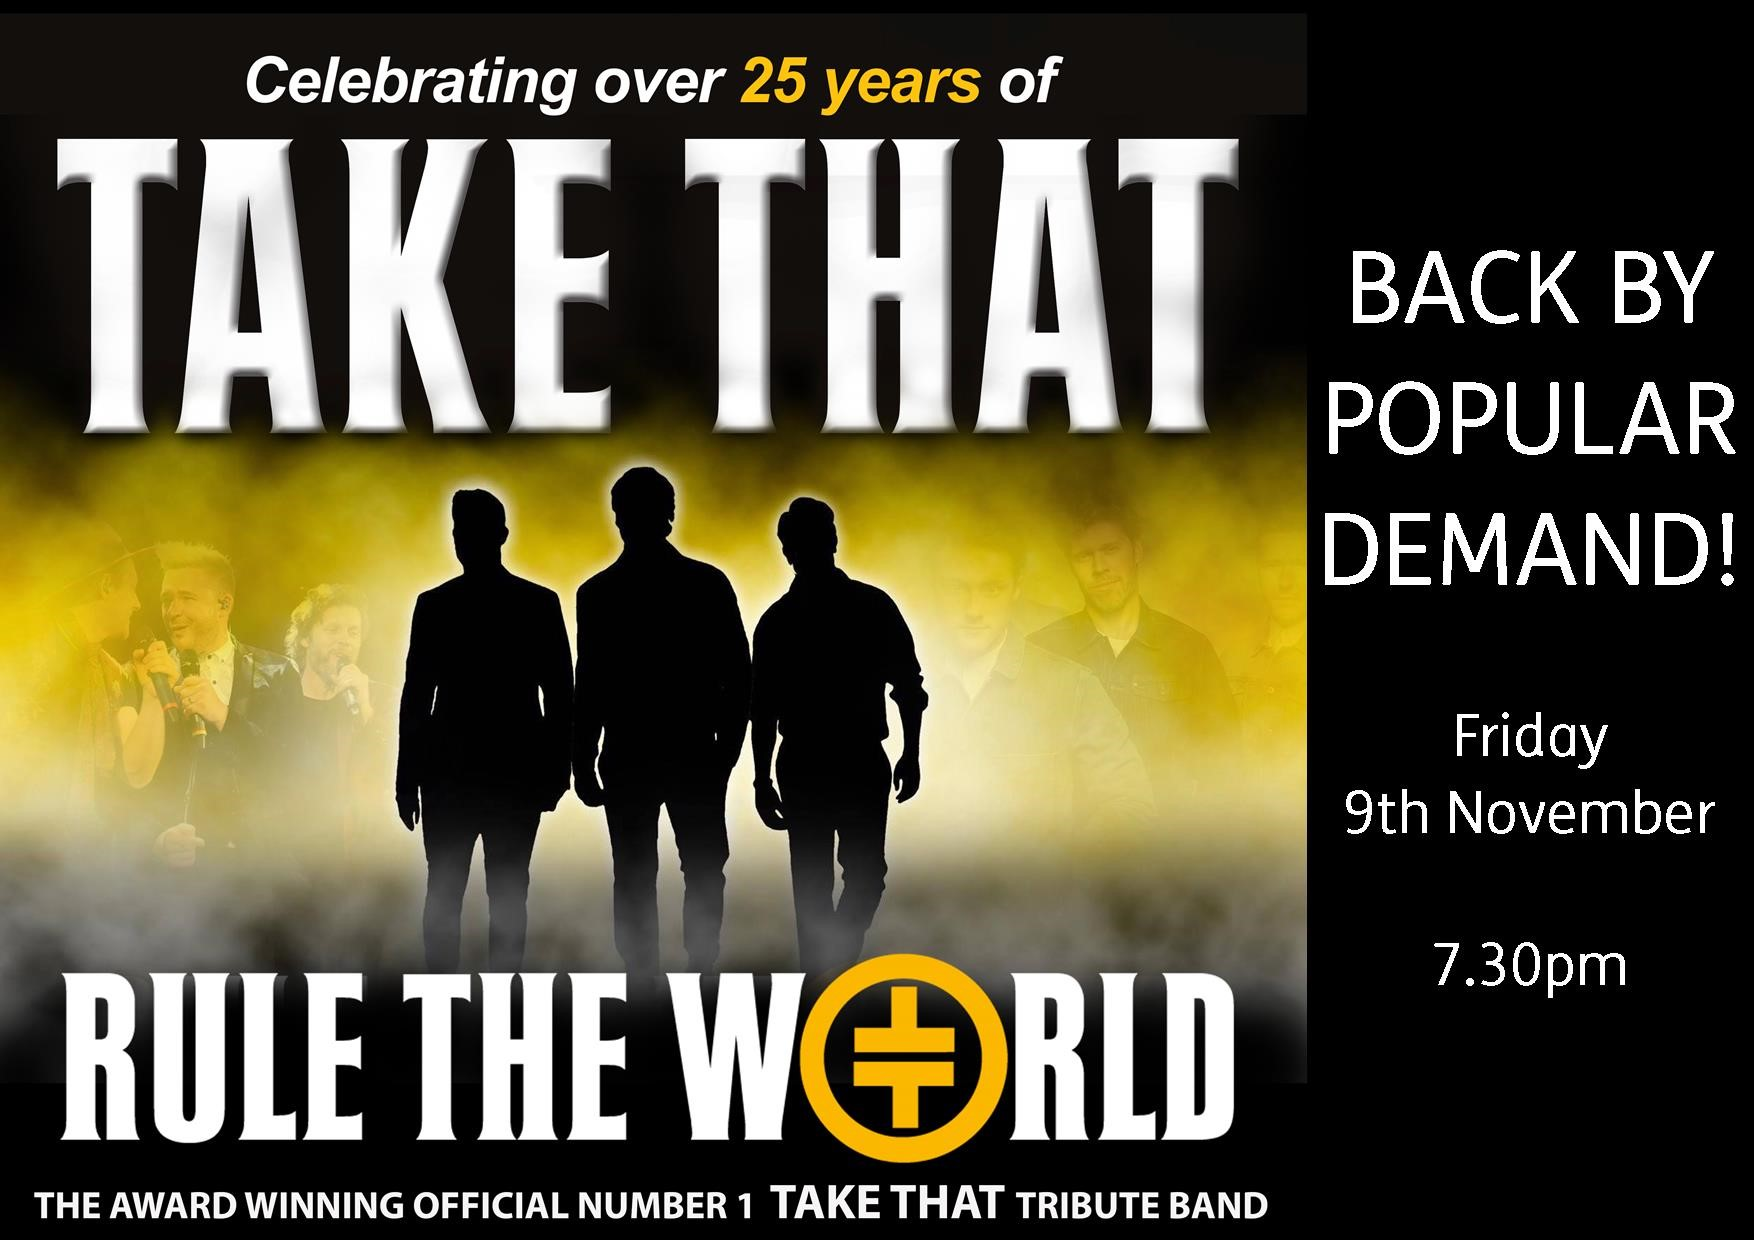 Celebrating over 25 Years of TAKE THAT